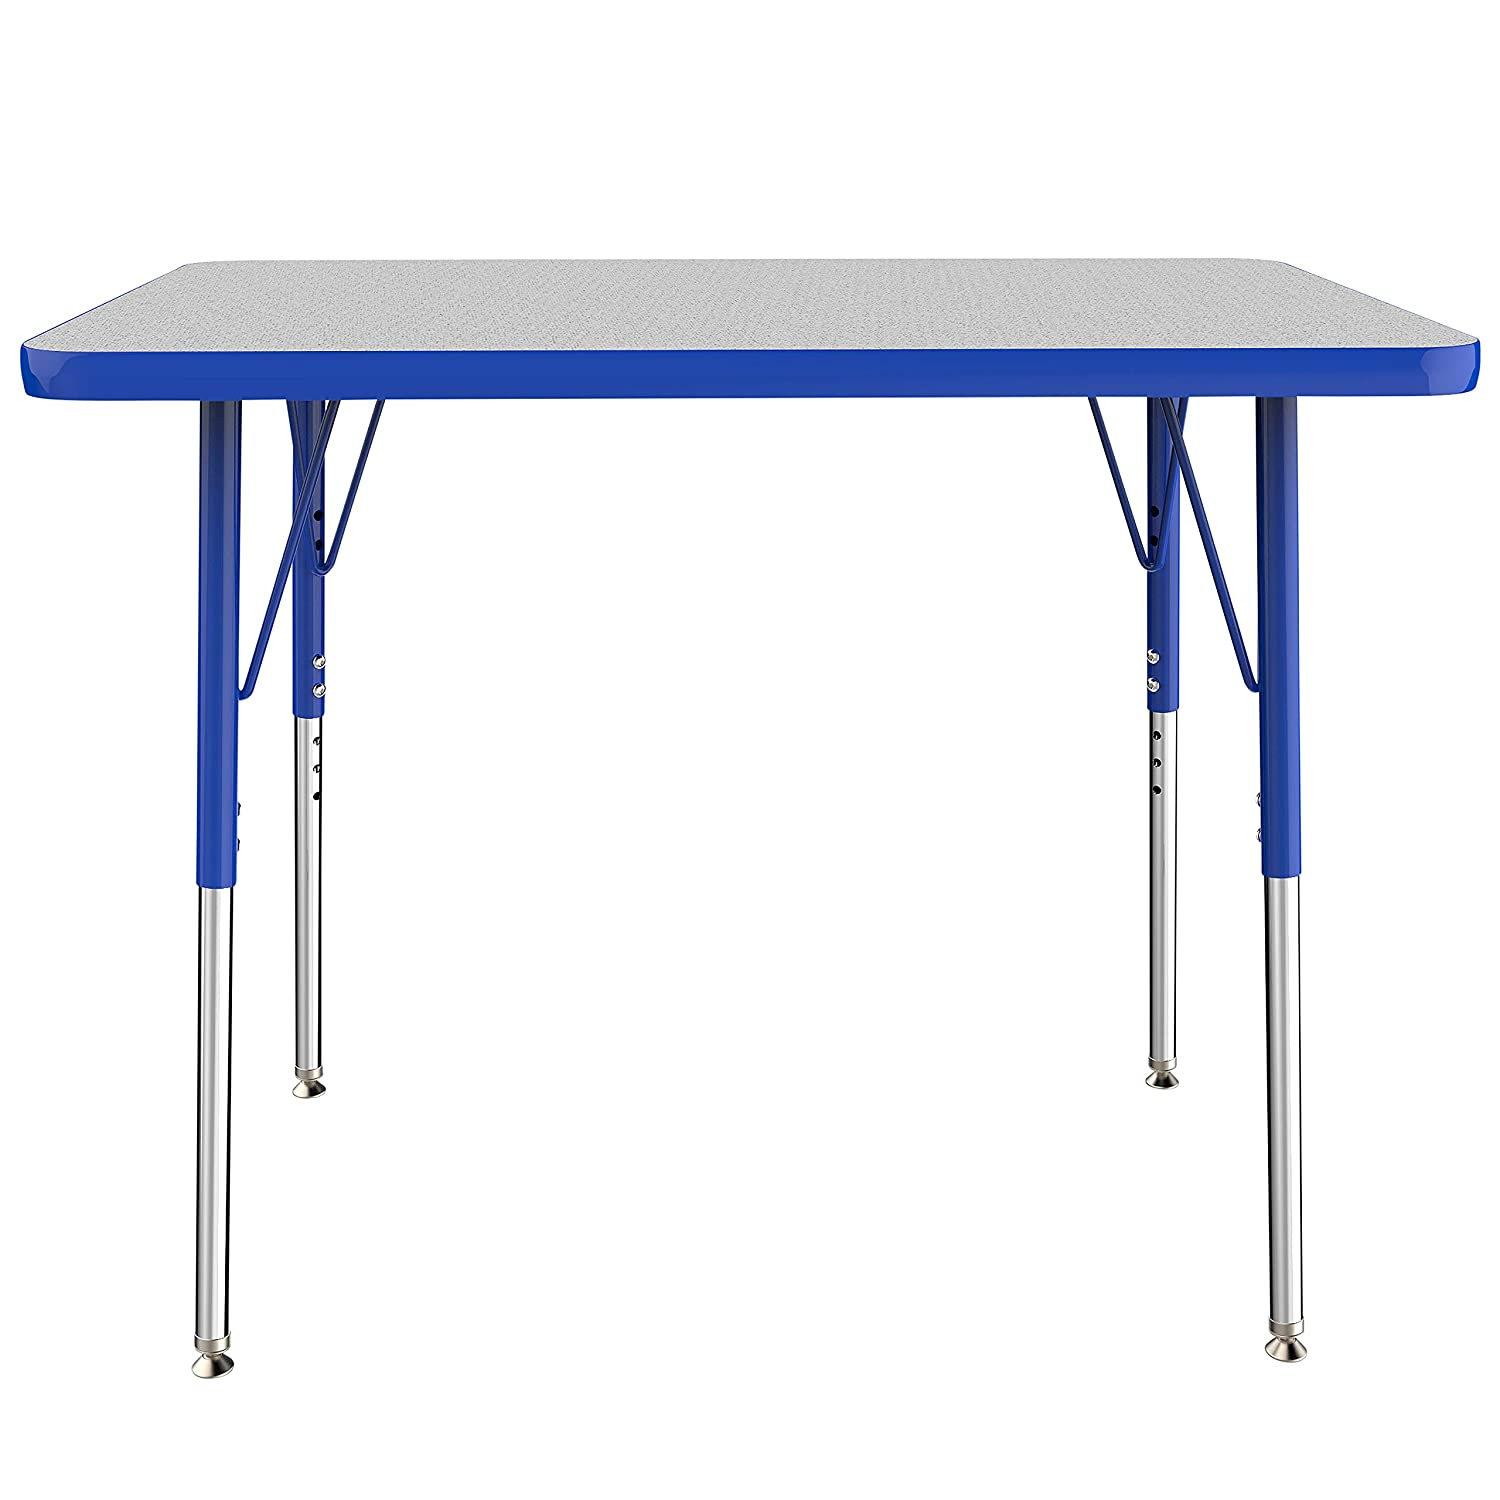 FDP Rectangle Activity School and Office Table (24 x 36 inch), Standard Legs with Swivel Glides, Adjustable Height 19-30 inches - Gray Top and Blue Edge